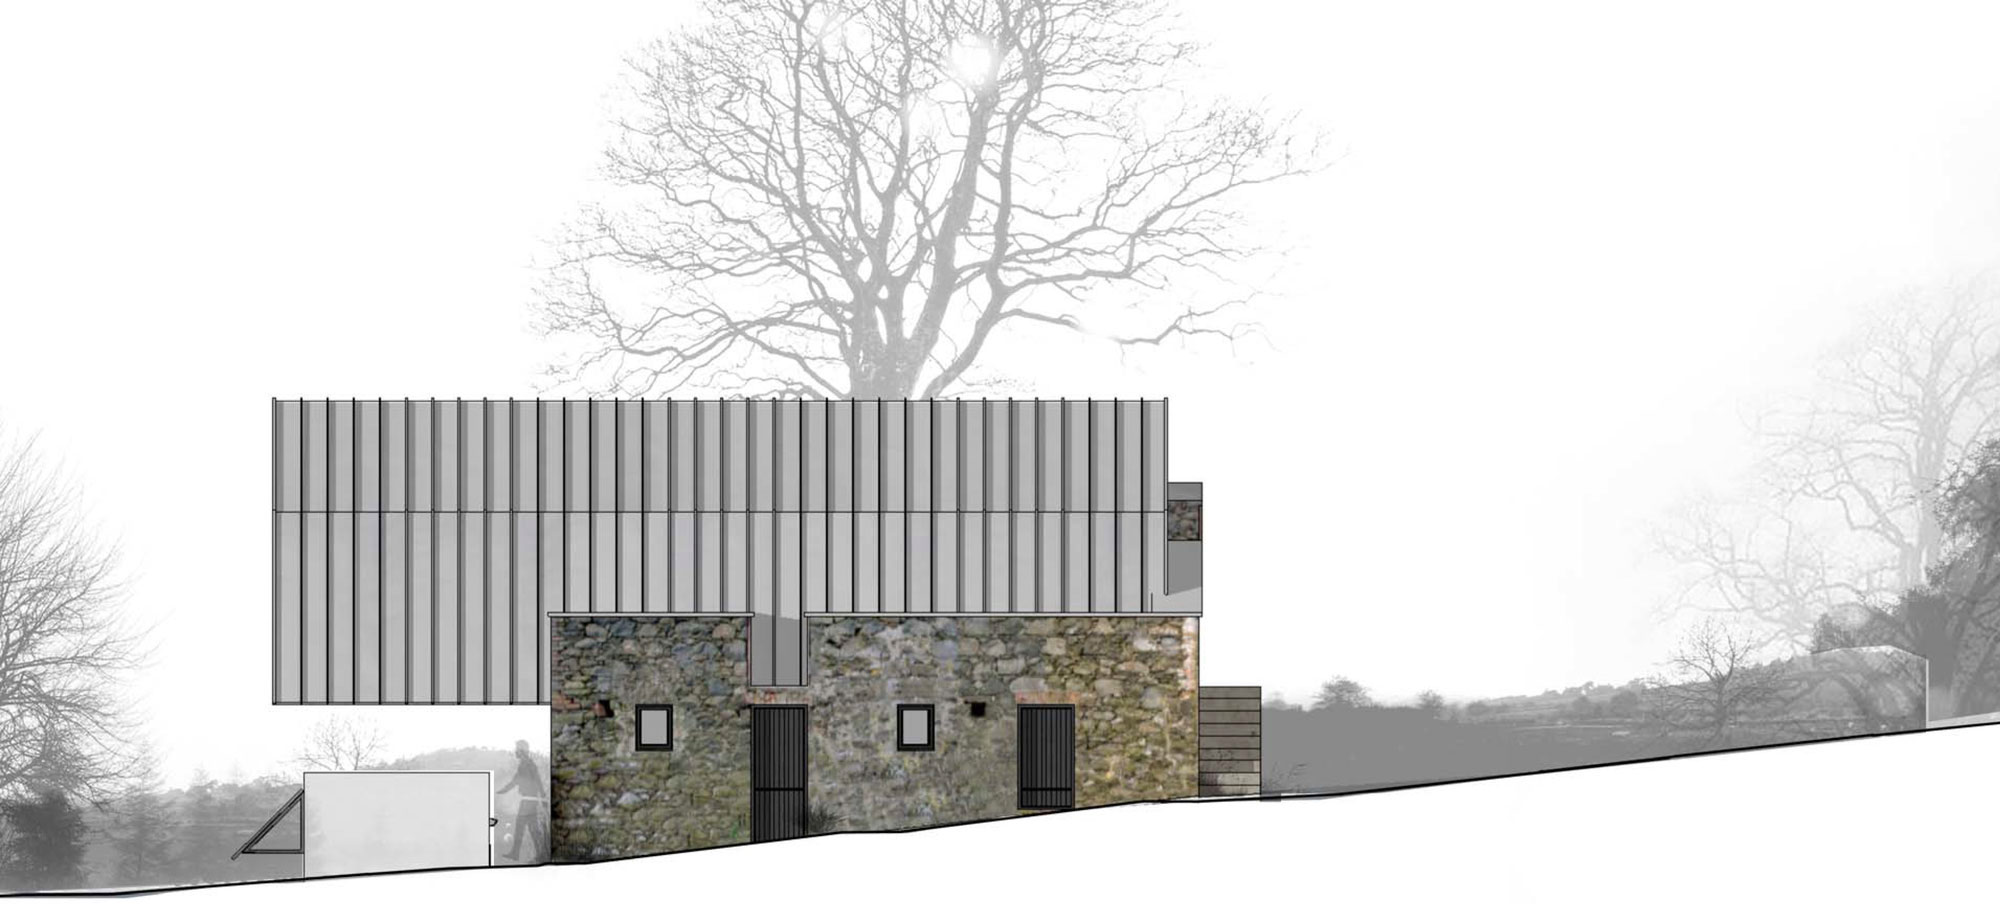 Elevation barn conversion in broughshane northern ireland for Moon architecture